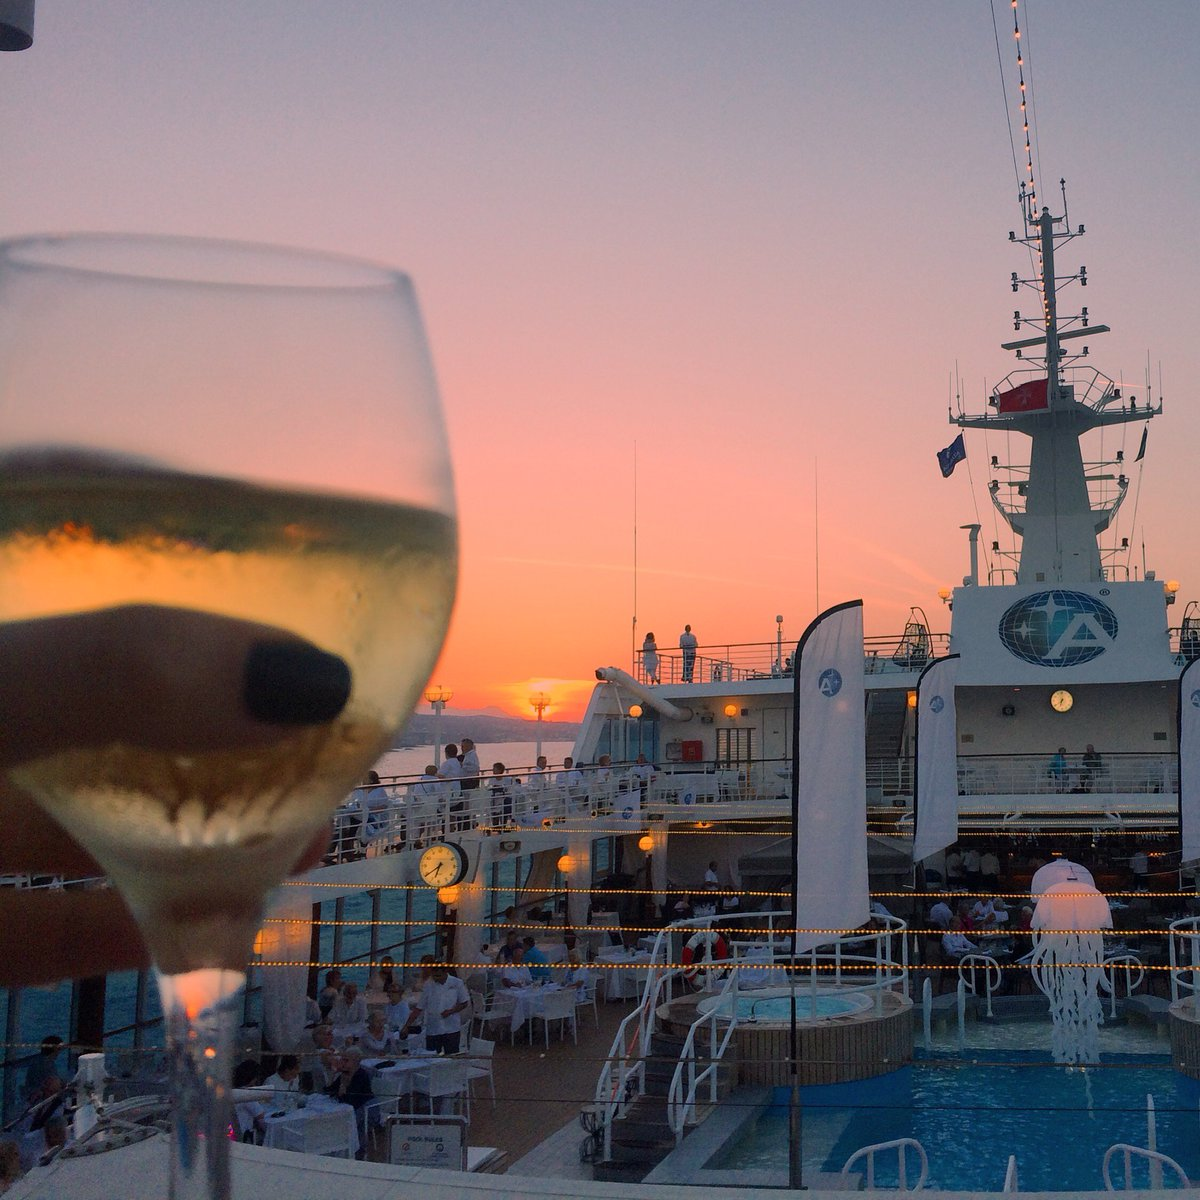 Hopefully next year! @AzamaraVoyages A8 Don't forget to pack outfit for our onboard White Night party! #CruiseChat https://t.co/advlDn6f8C